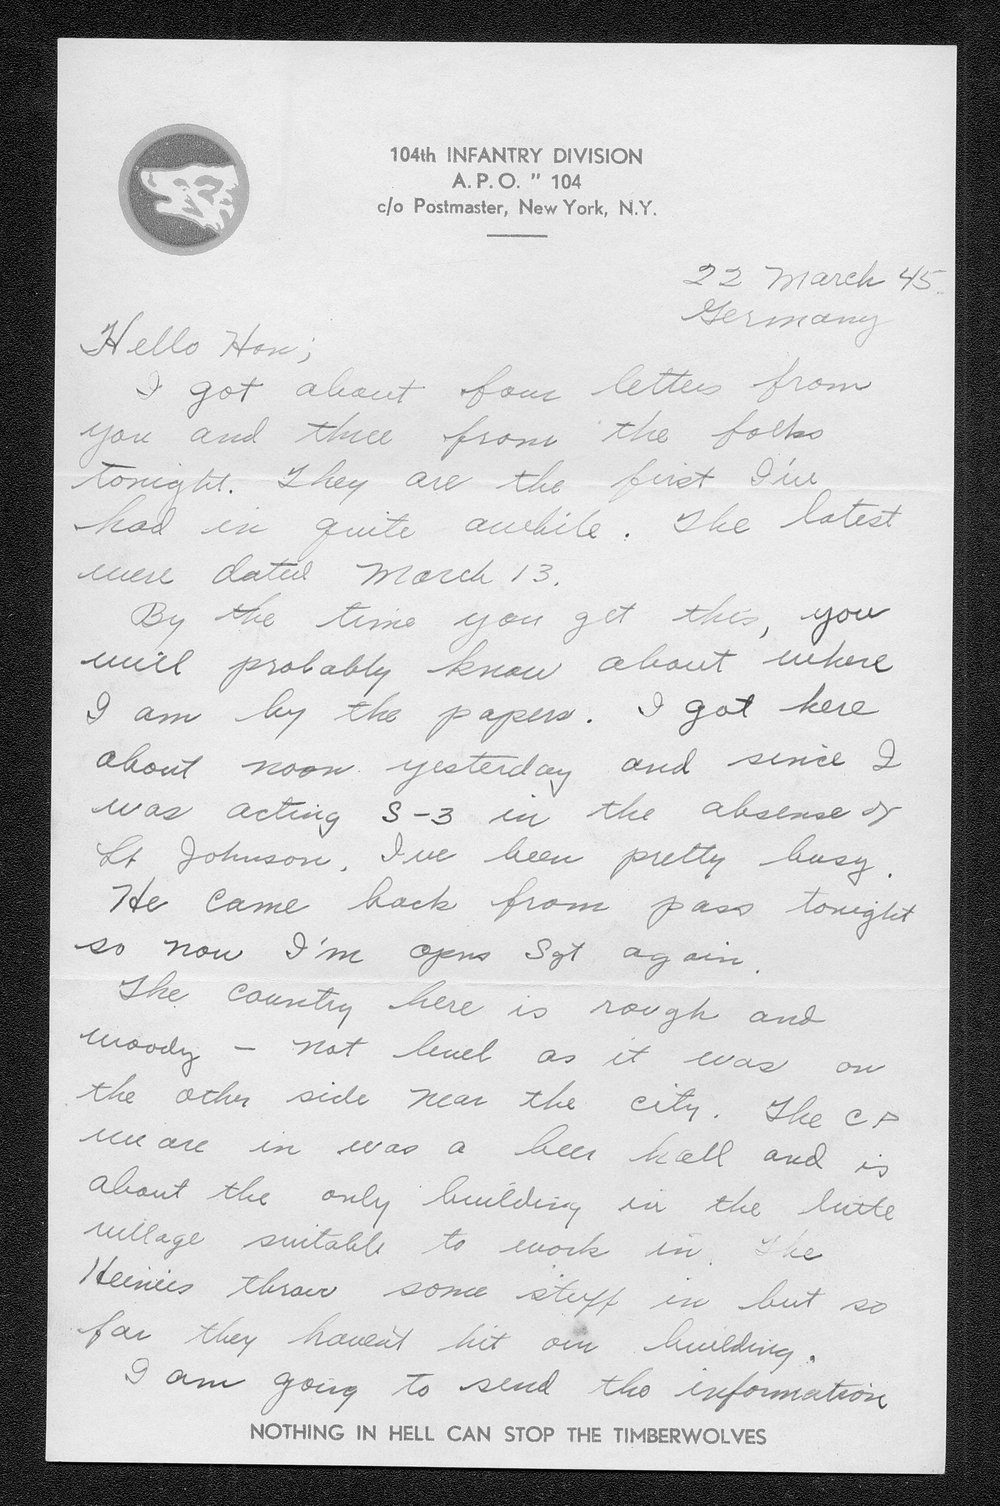 Letters from Hilton Parris Mize to his wife Irene Rosenberger Mize - 8